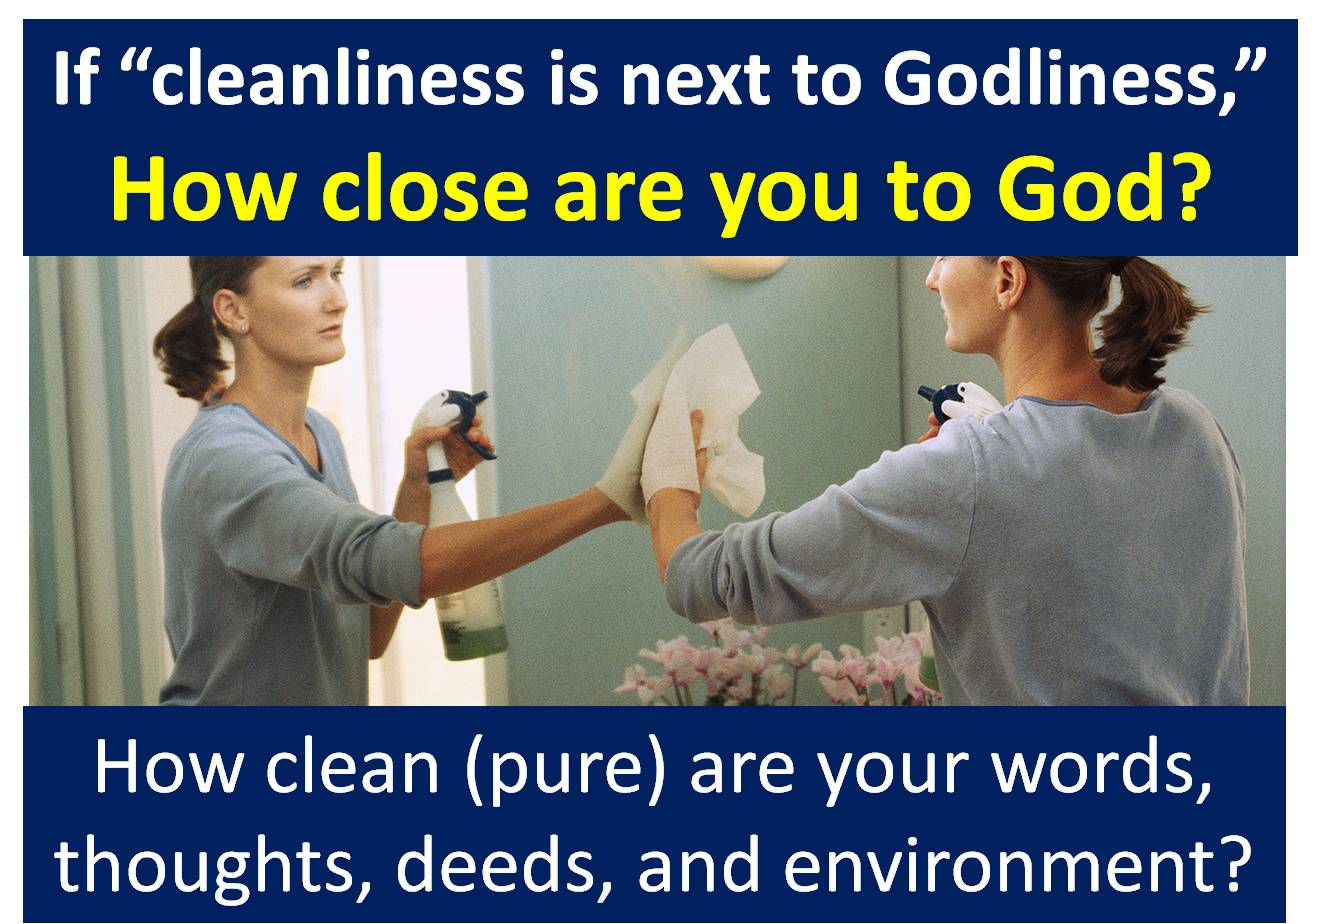 Dating with godliness is next to cleanliness. clinique saint vincent rocourt rendez vous dating.